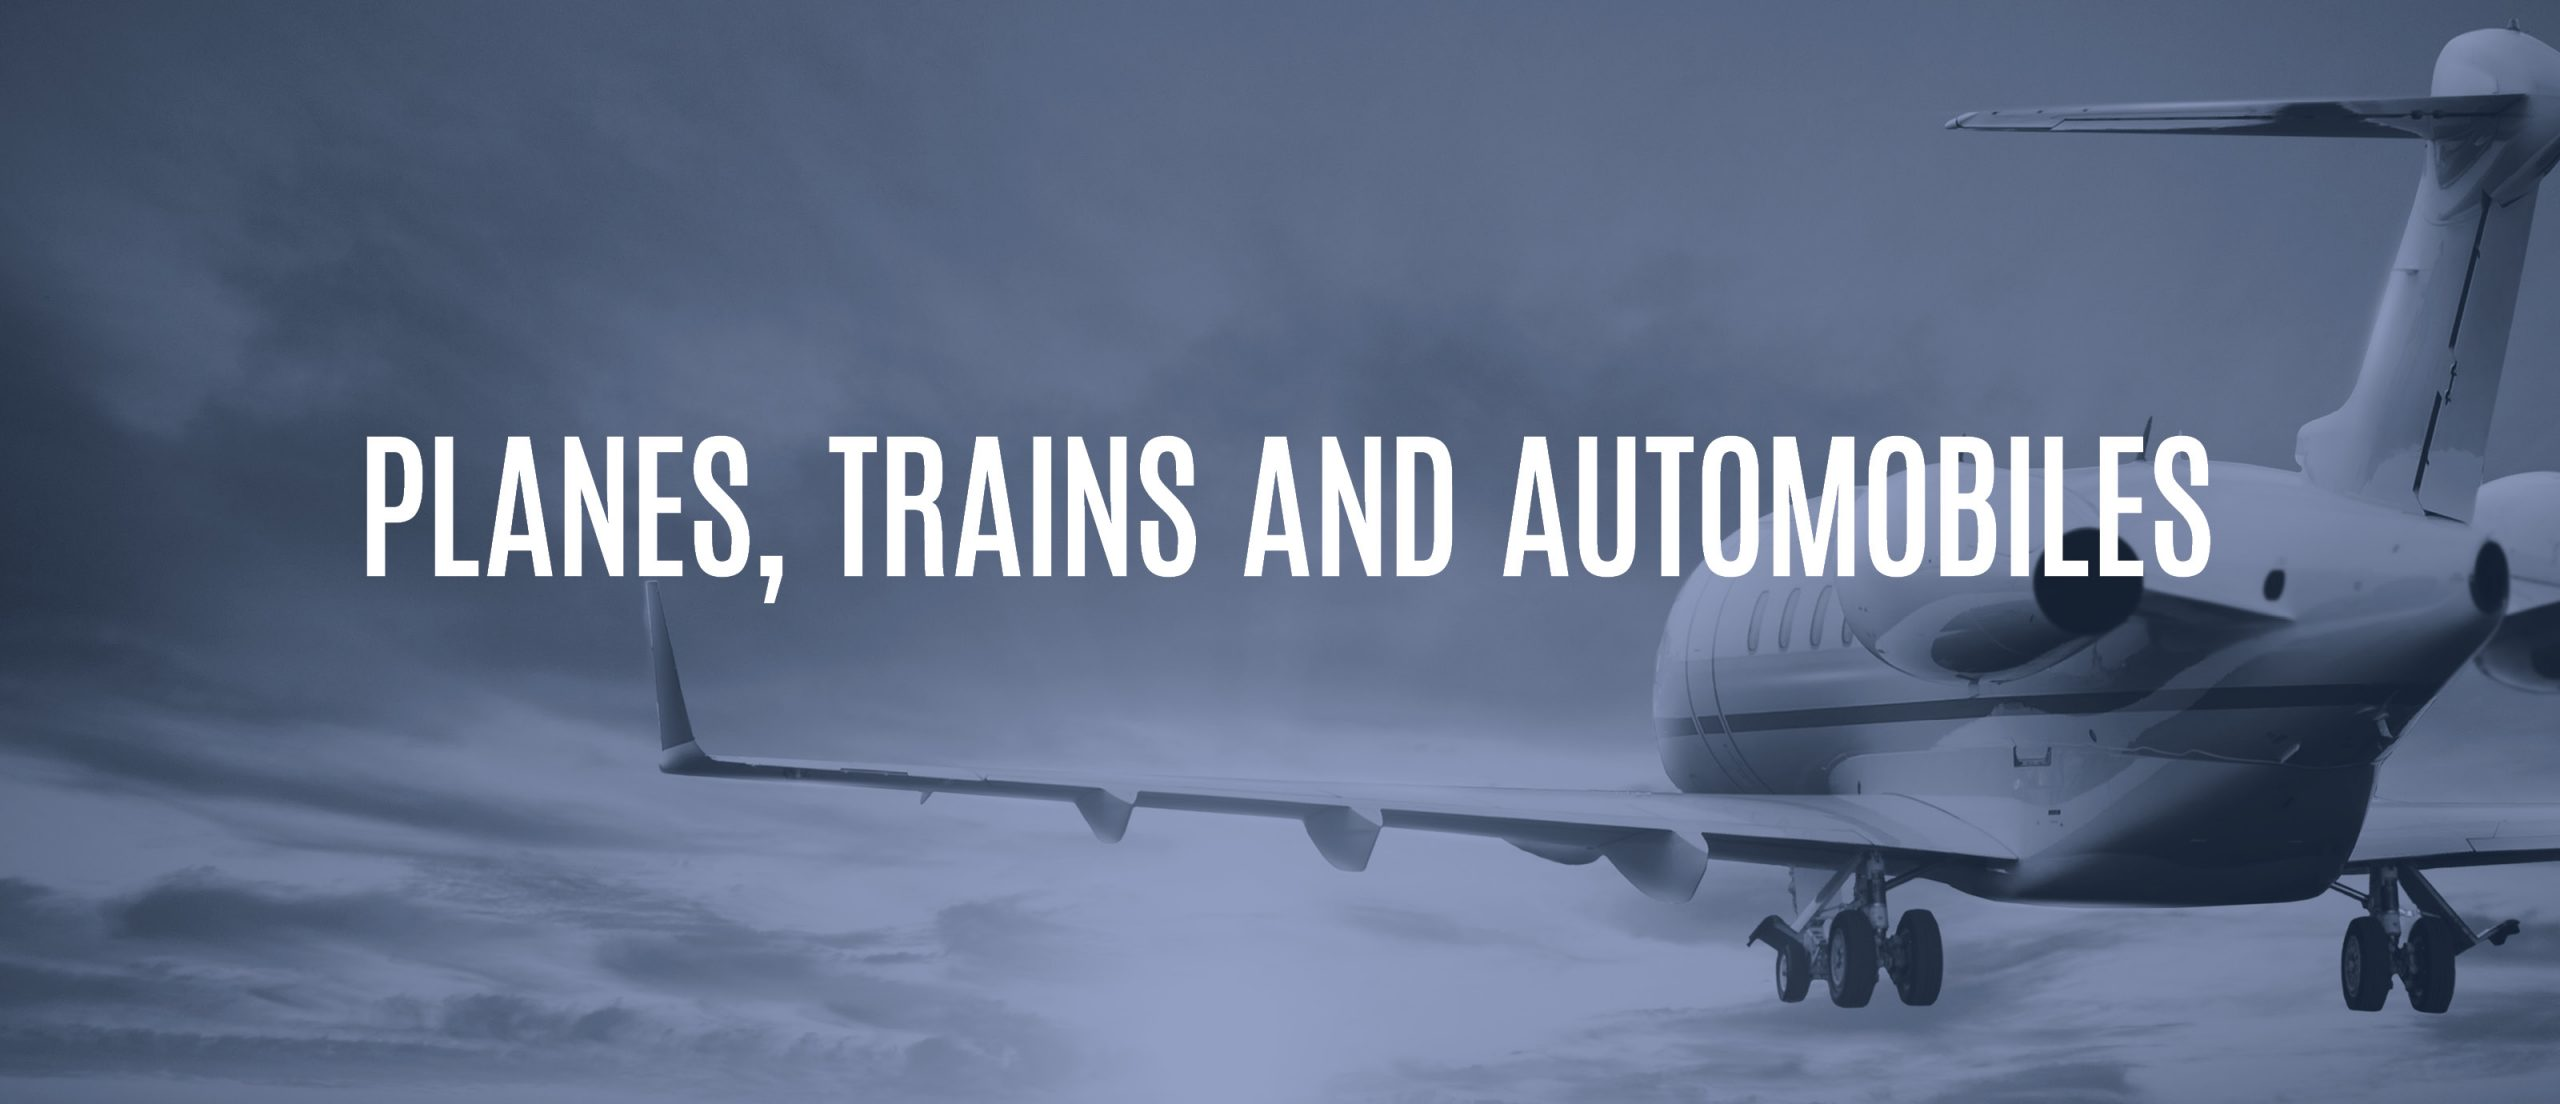 Blog Title - Planes, Trains, and Automobiles